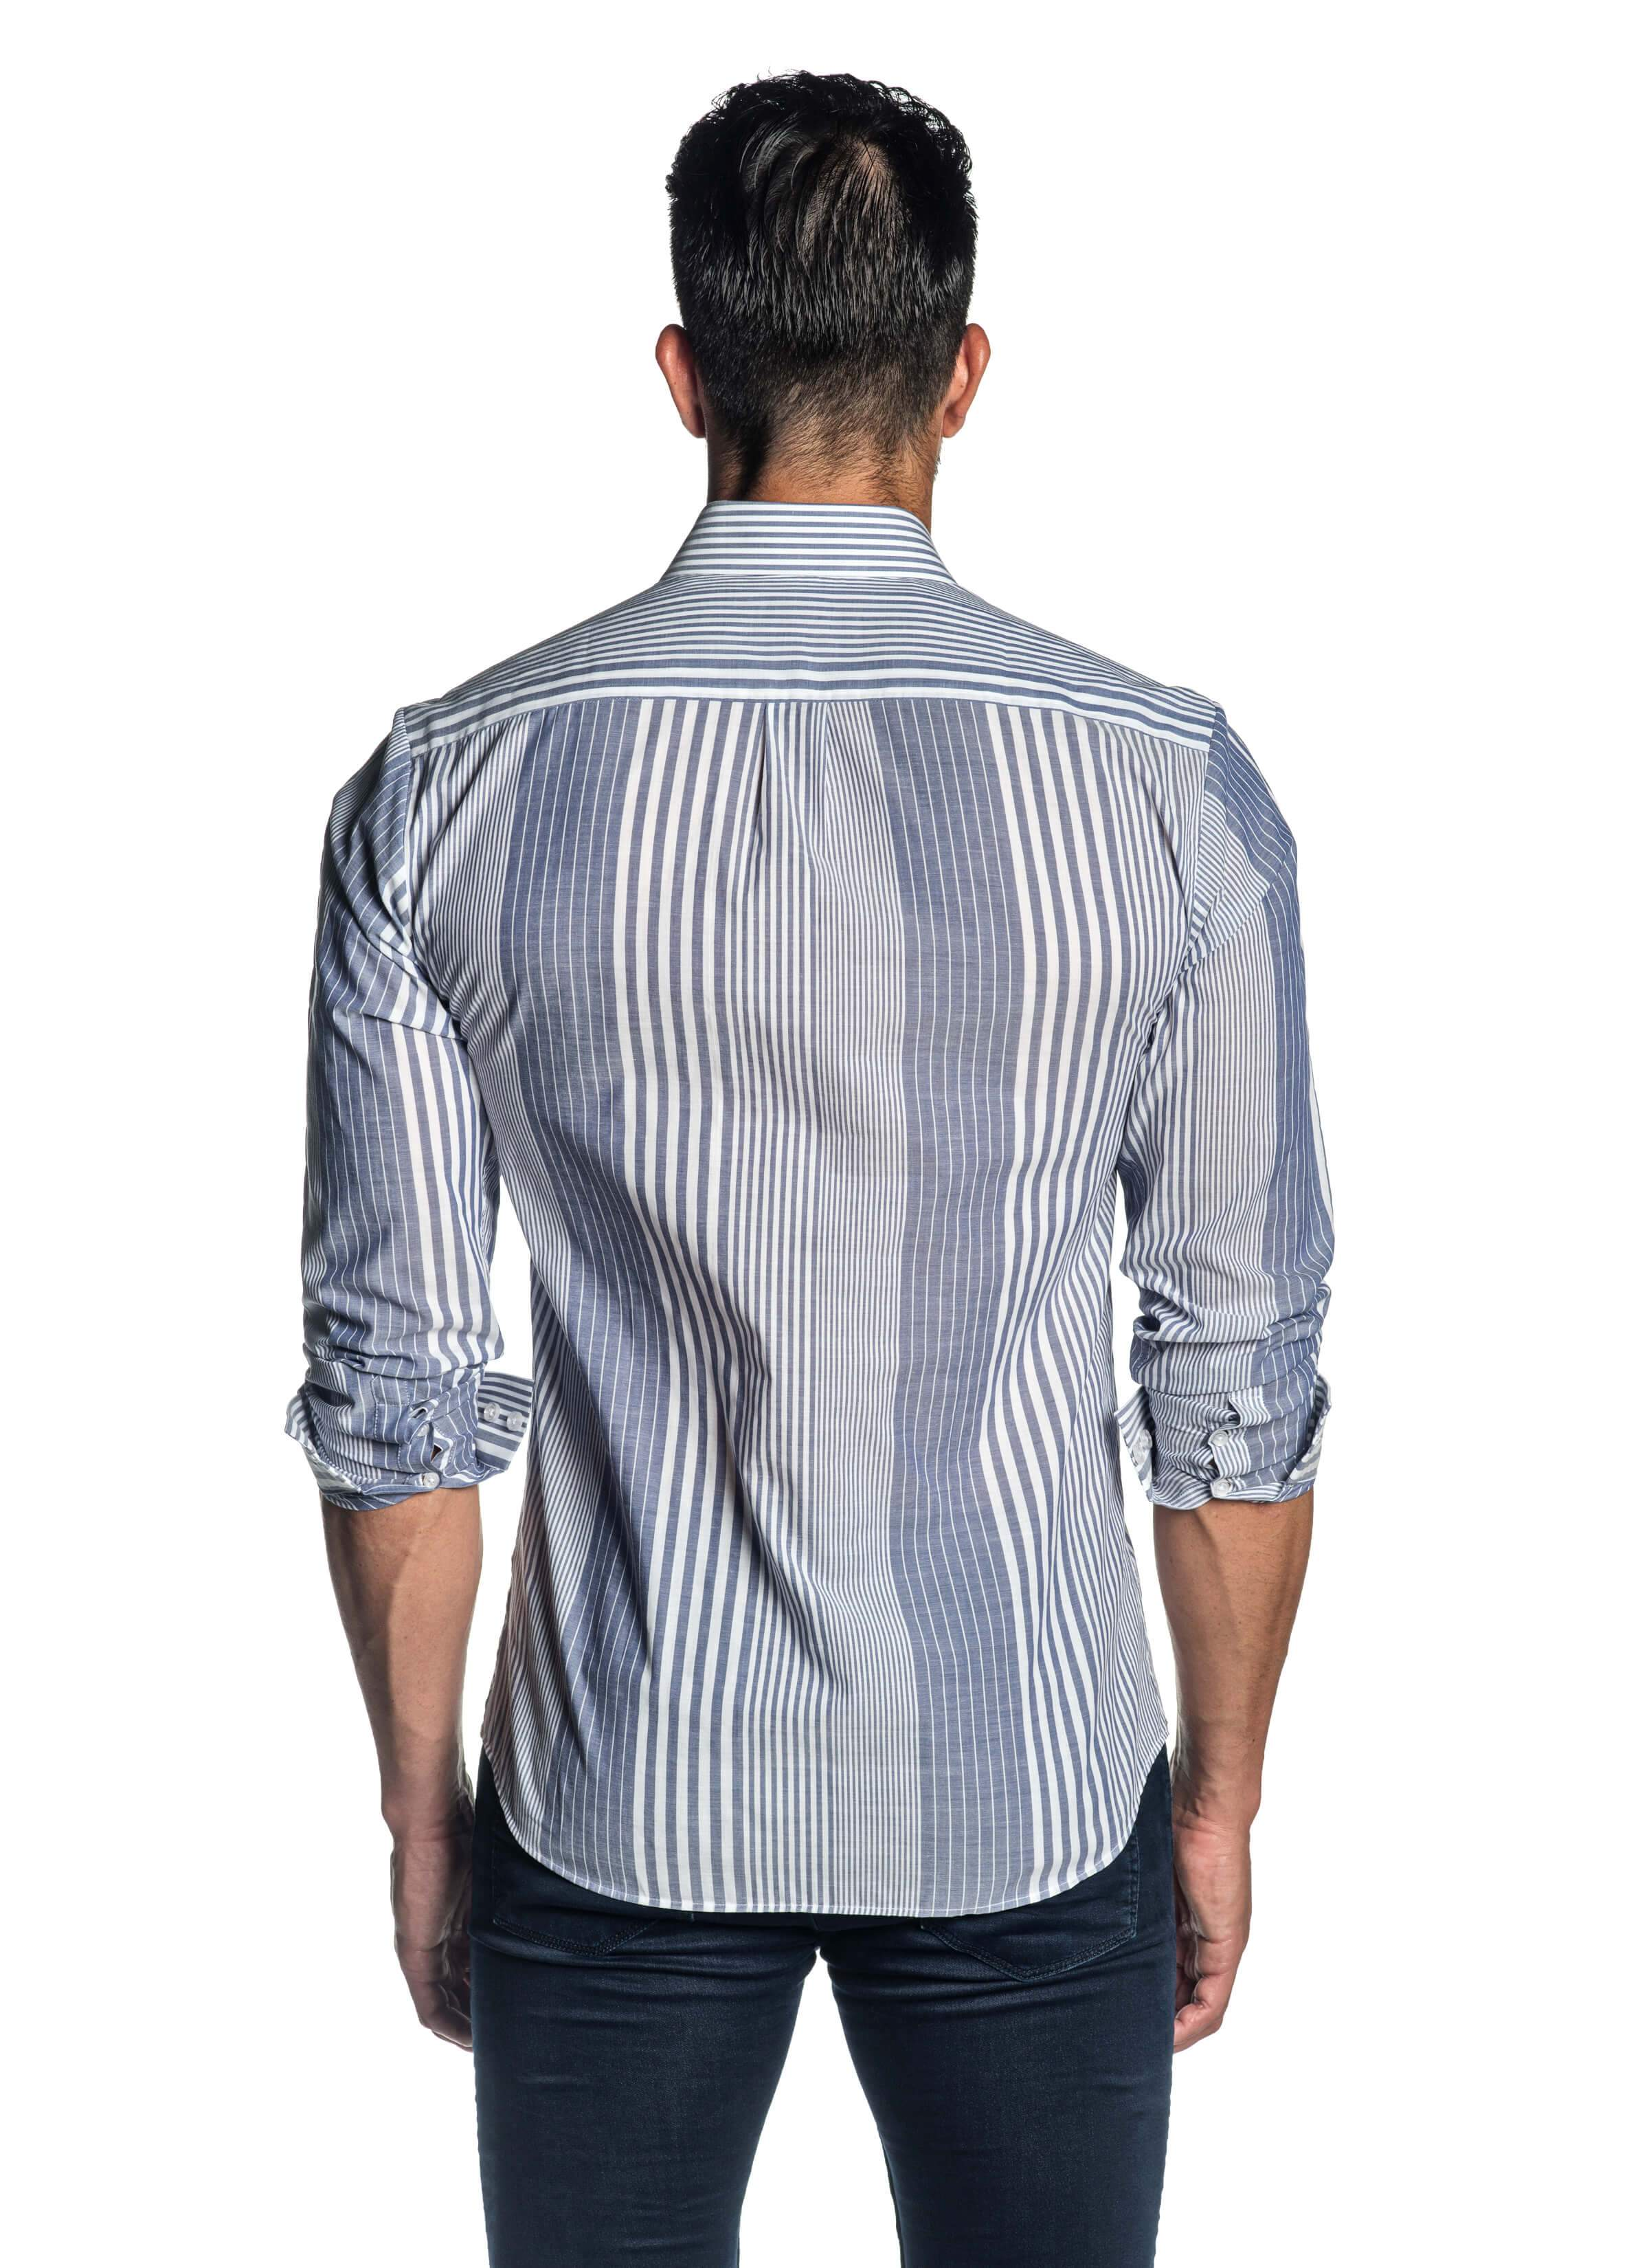 White and Blue Striped Shirt for Men AH-ITA-T-9008